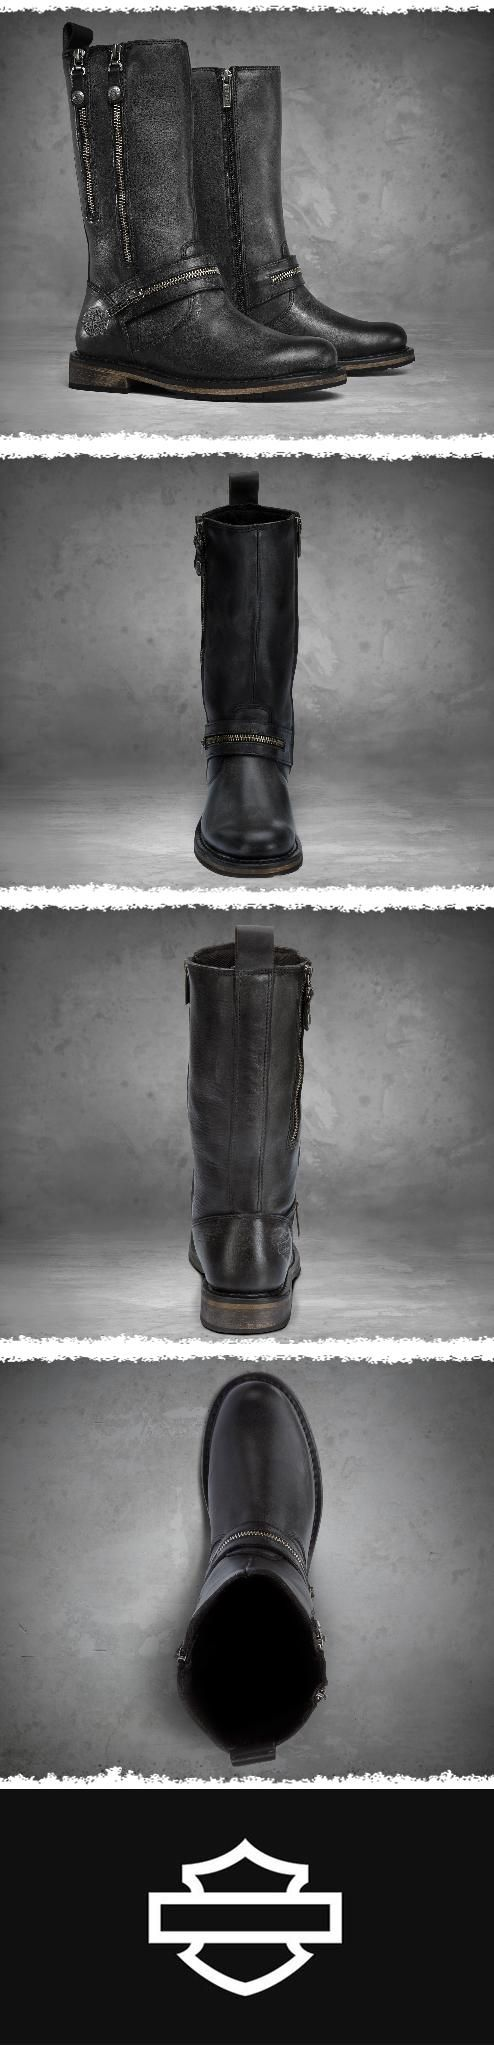 Complete your look from head to toe. | Harley-Davidson Women's Sackett Boots - Black #MothersDay